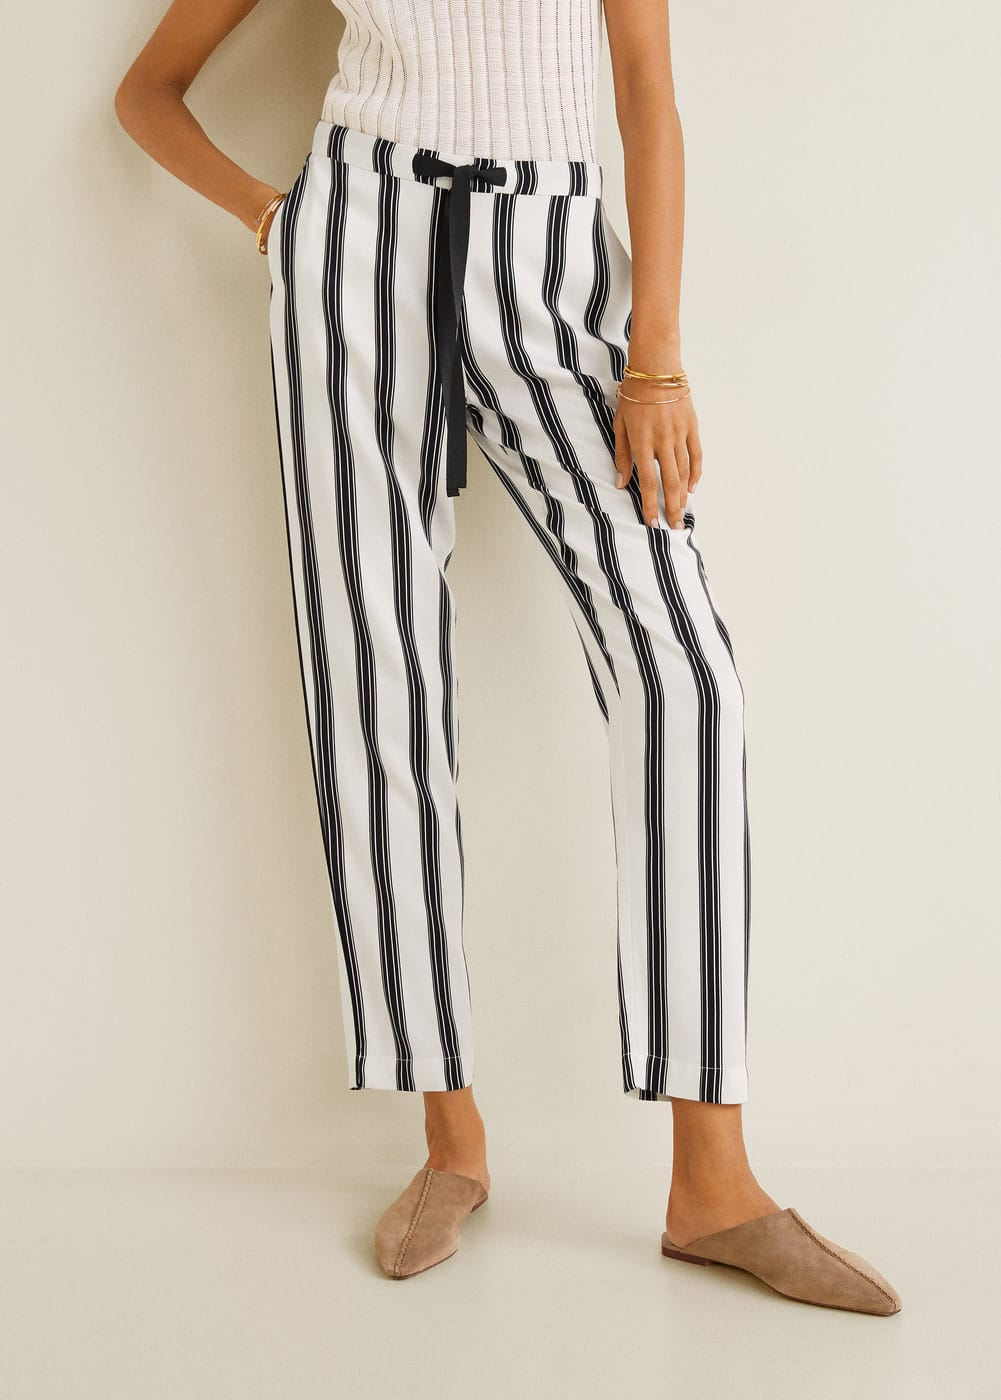 m-fluido:pantalon largo recto